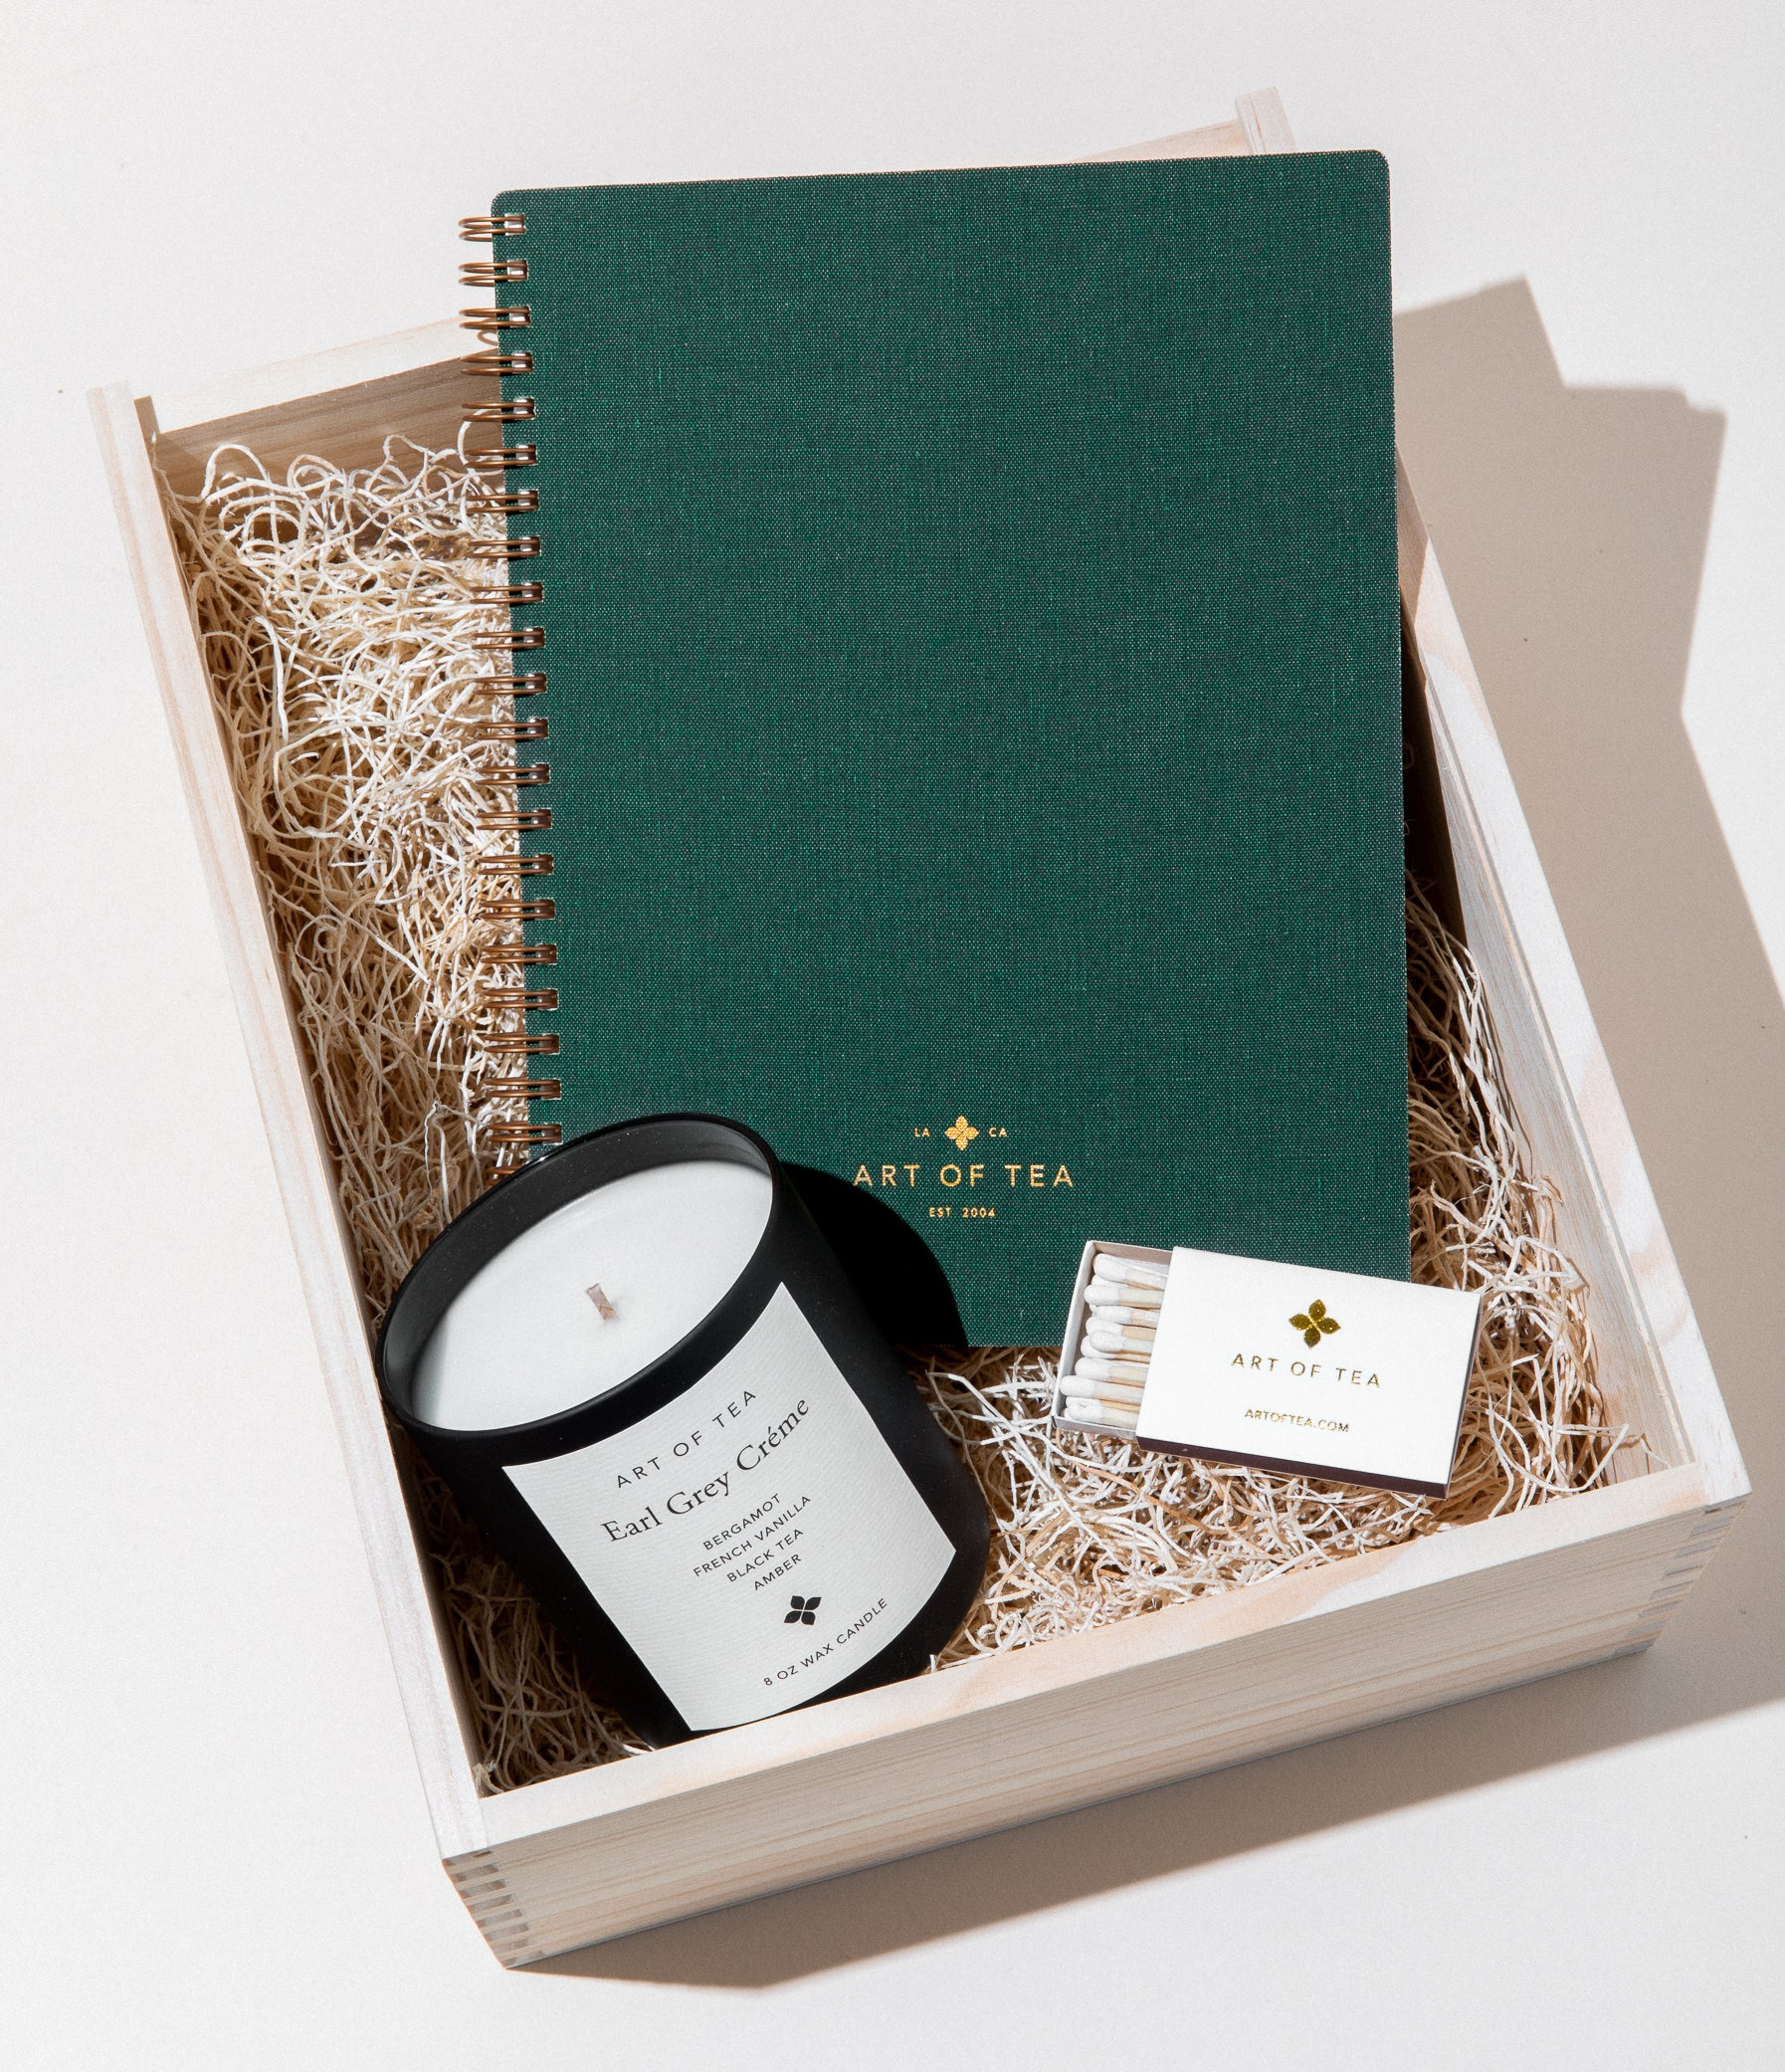 Candle, Matches, & Journal Gift Box Set Tea Gifts by Art of Tea